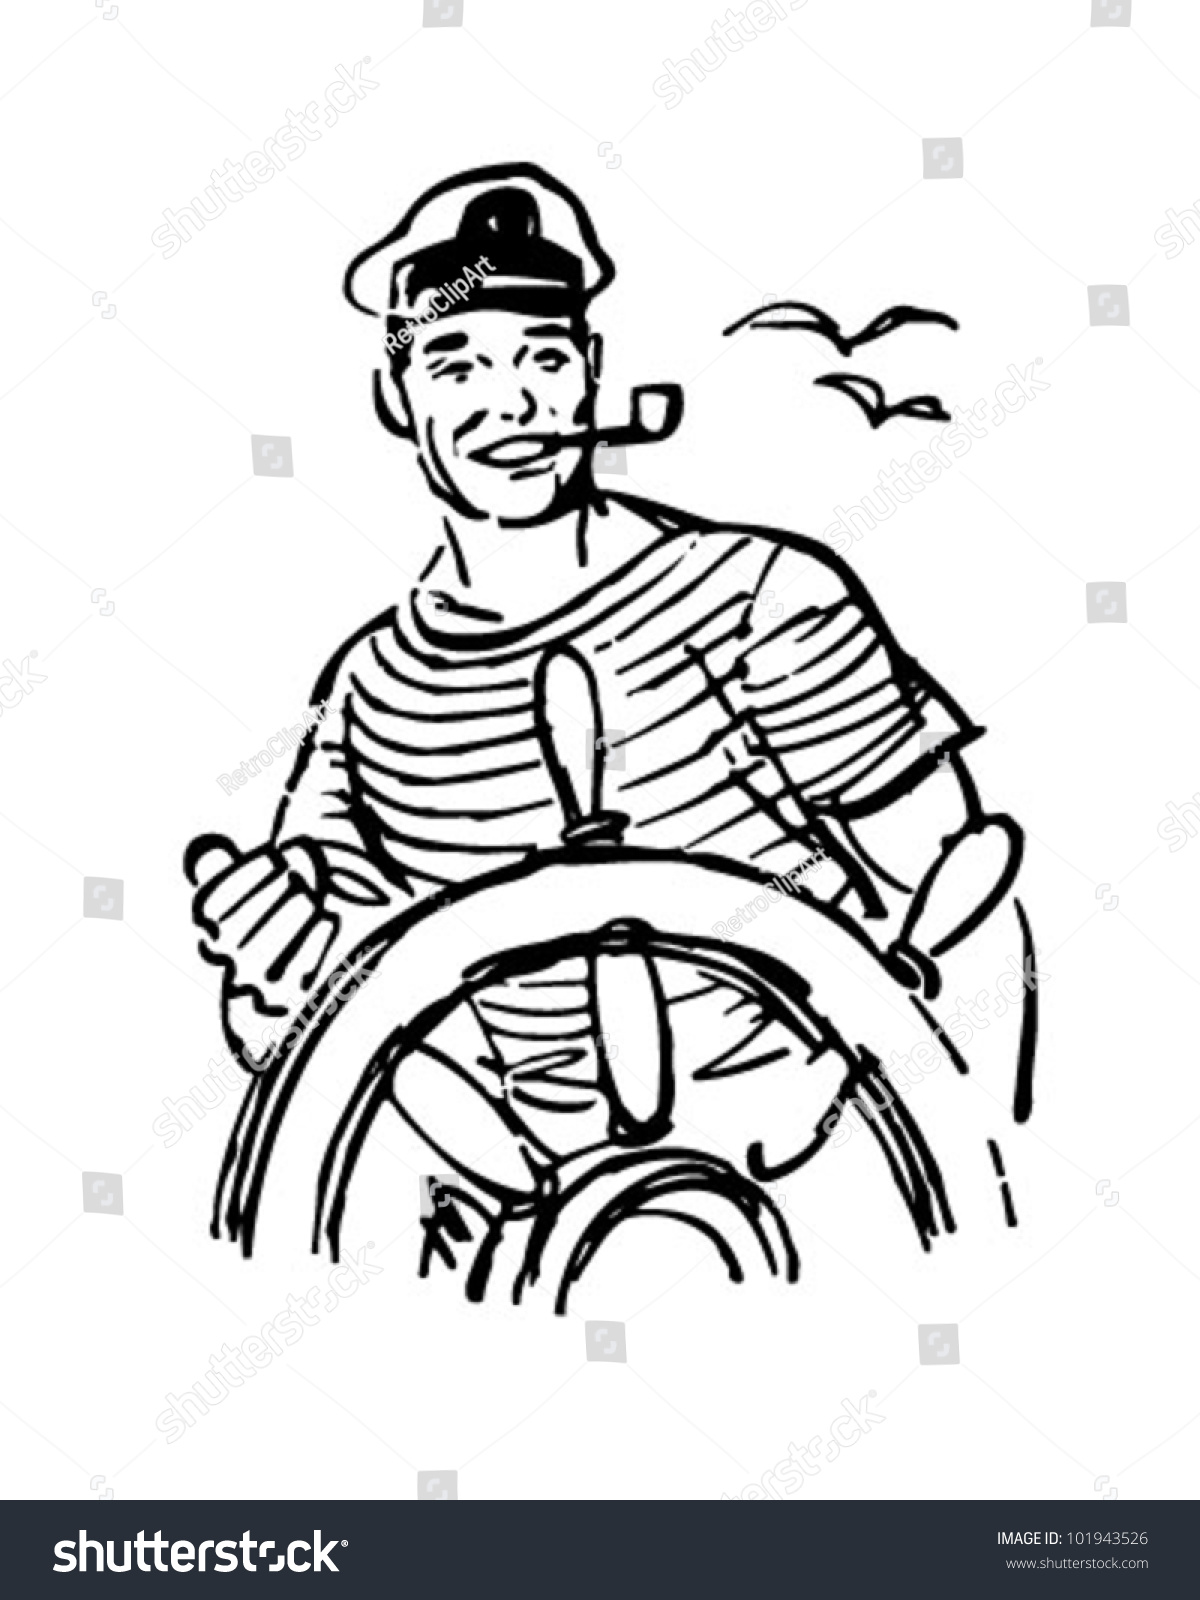 Sailor stock photos illustrations and vector art - Sailor At The Helm Retro Clipart Illustration